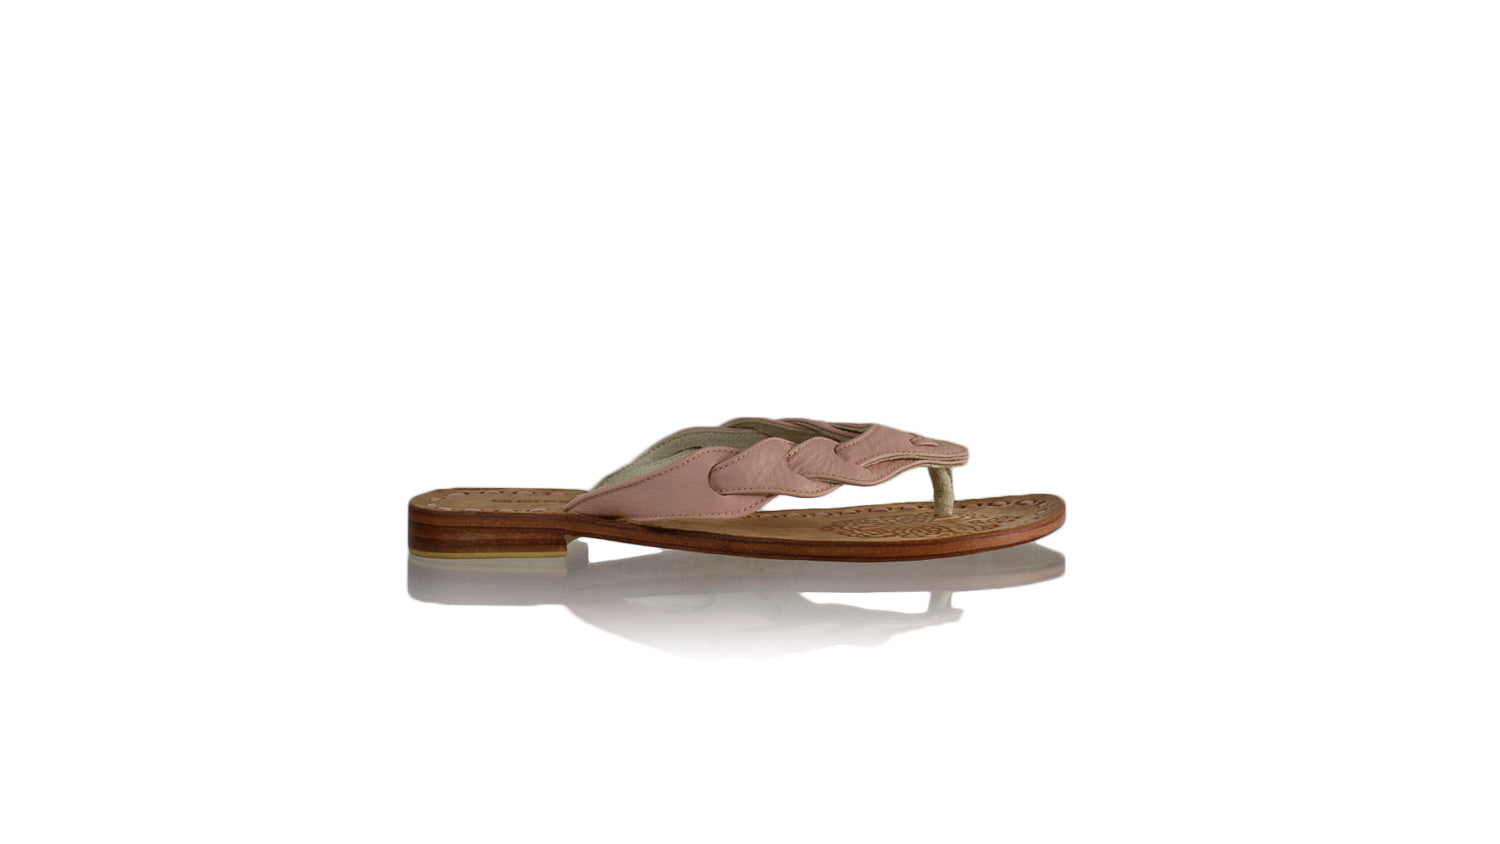 Leather-shoes-Jhonny Thong 20mm Flat - Soft Pink BKK-sandals flat-NILUH DJELANTIK-NILUH DJELANTIK